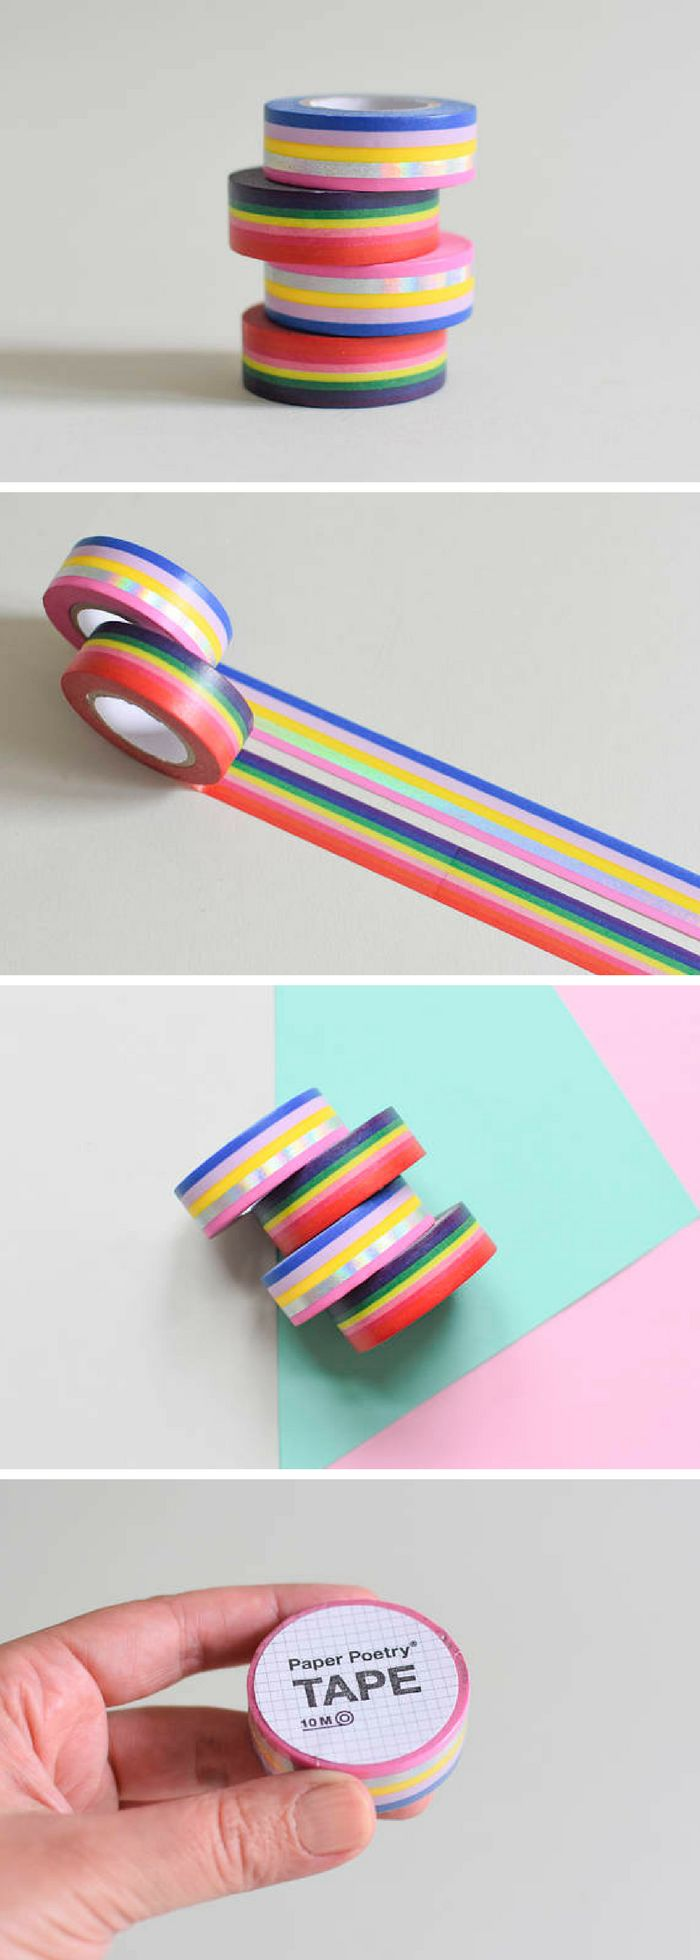 Gorgeous rainbow washi tape for crafting and